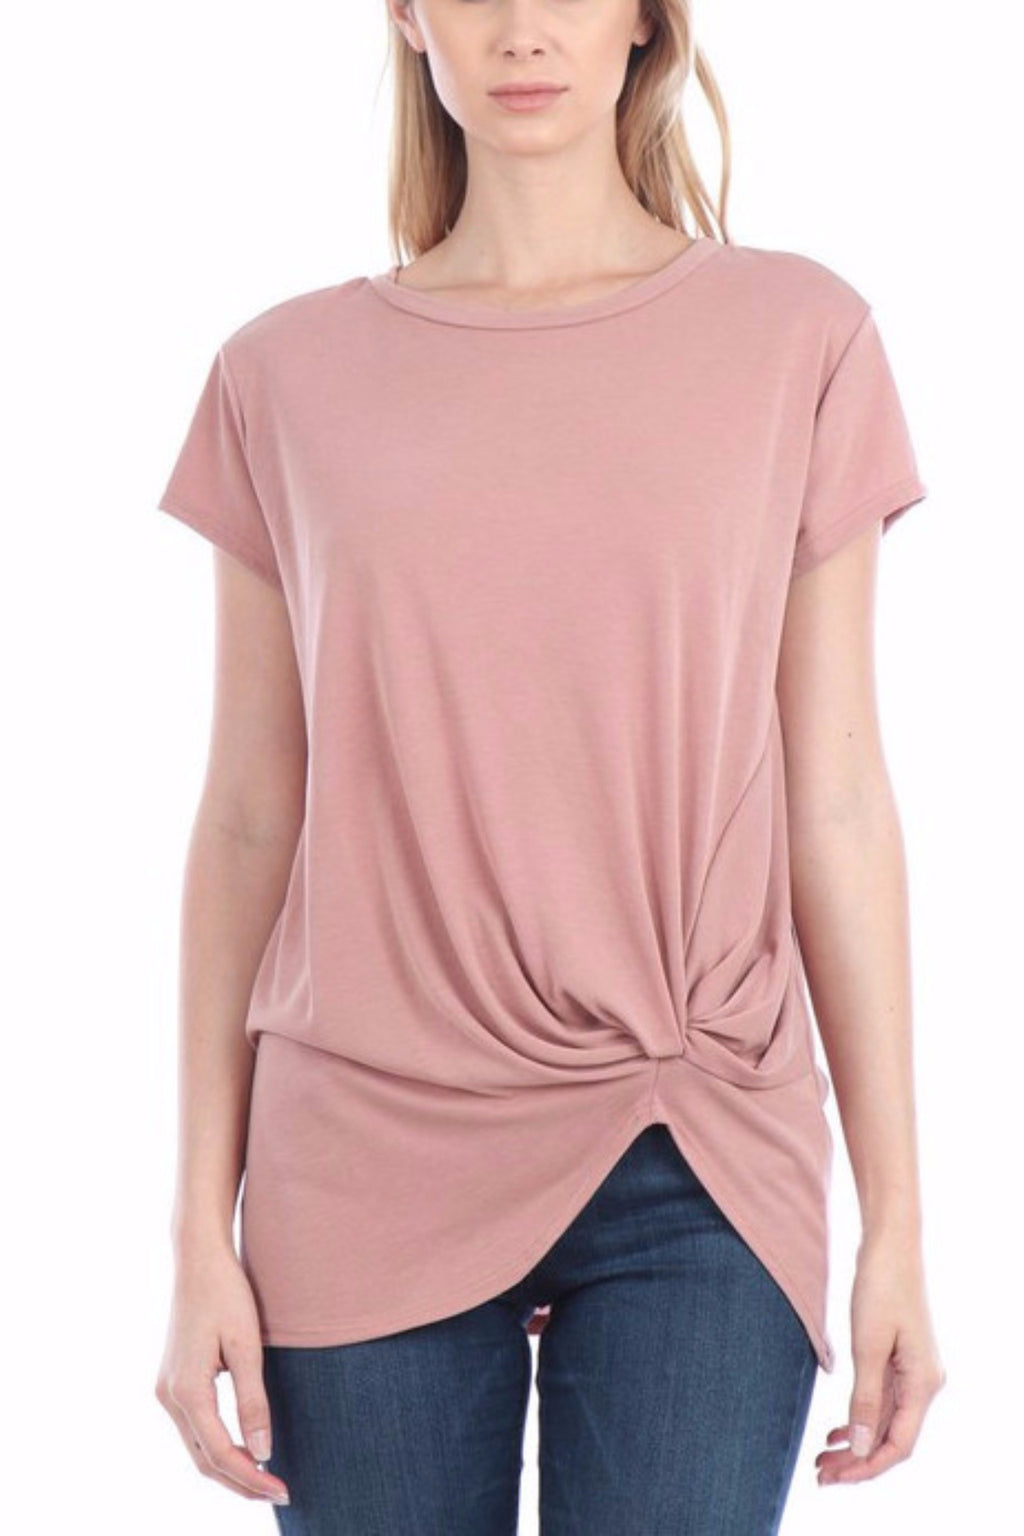 Geri Short Sleeve Cupro Knot Top (Dark Pink)